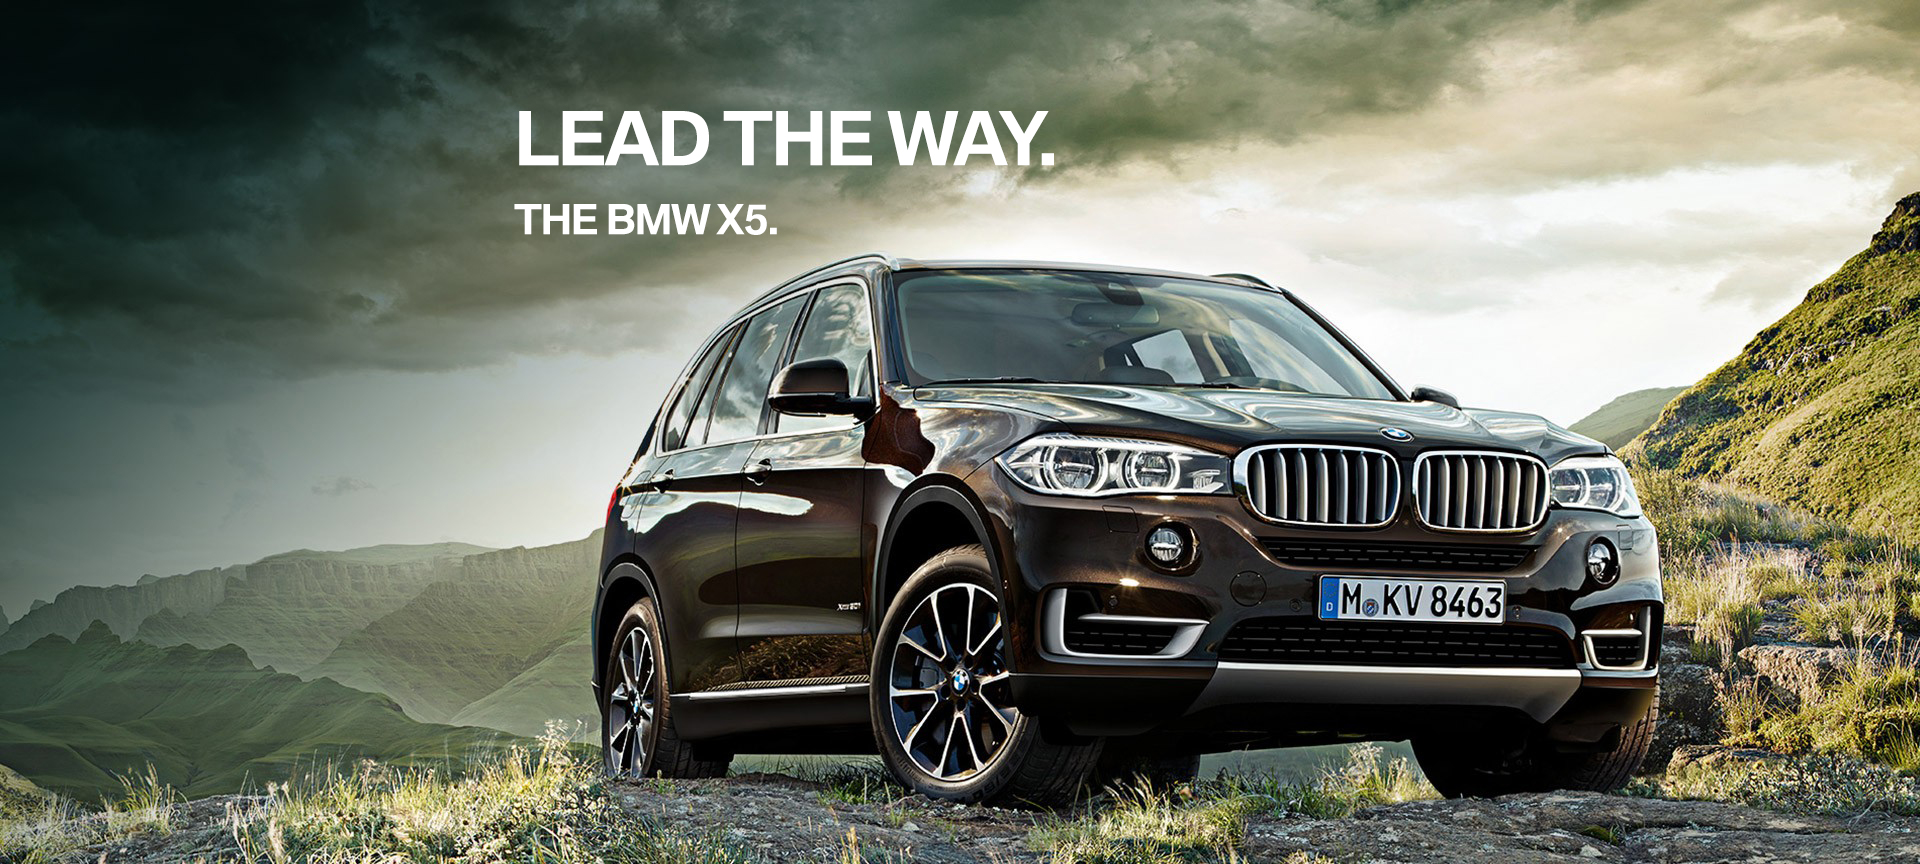 Drive to the limits. 2018 BMW X5 xDrive35i.